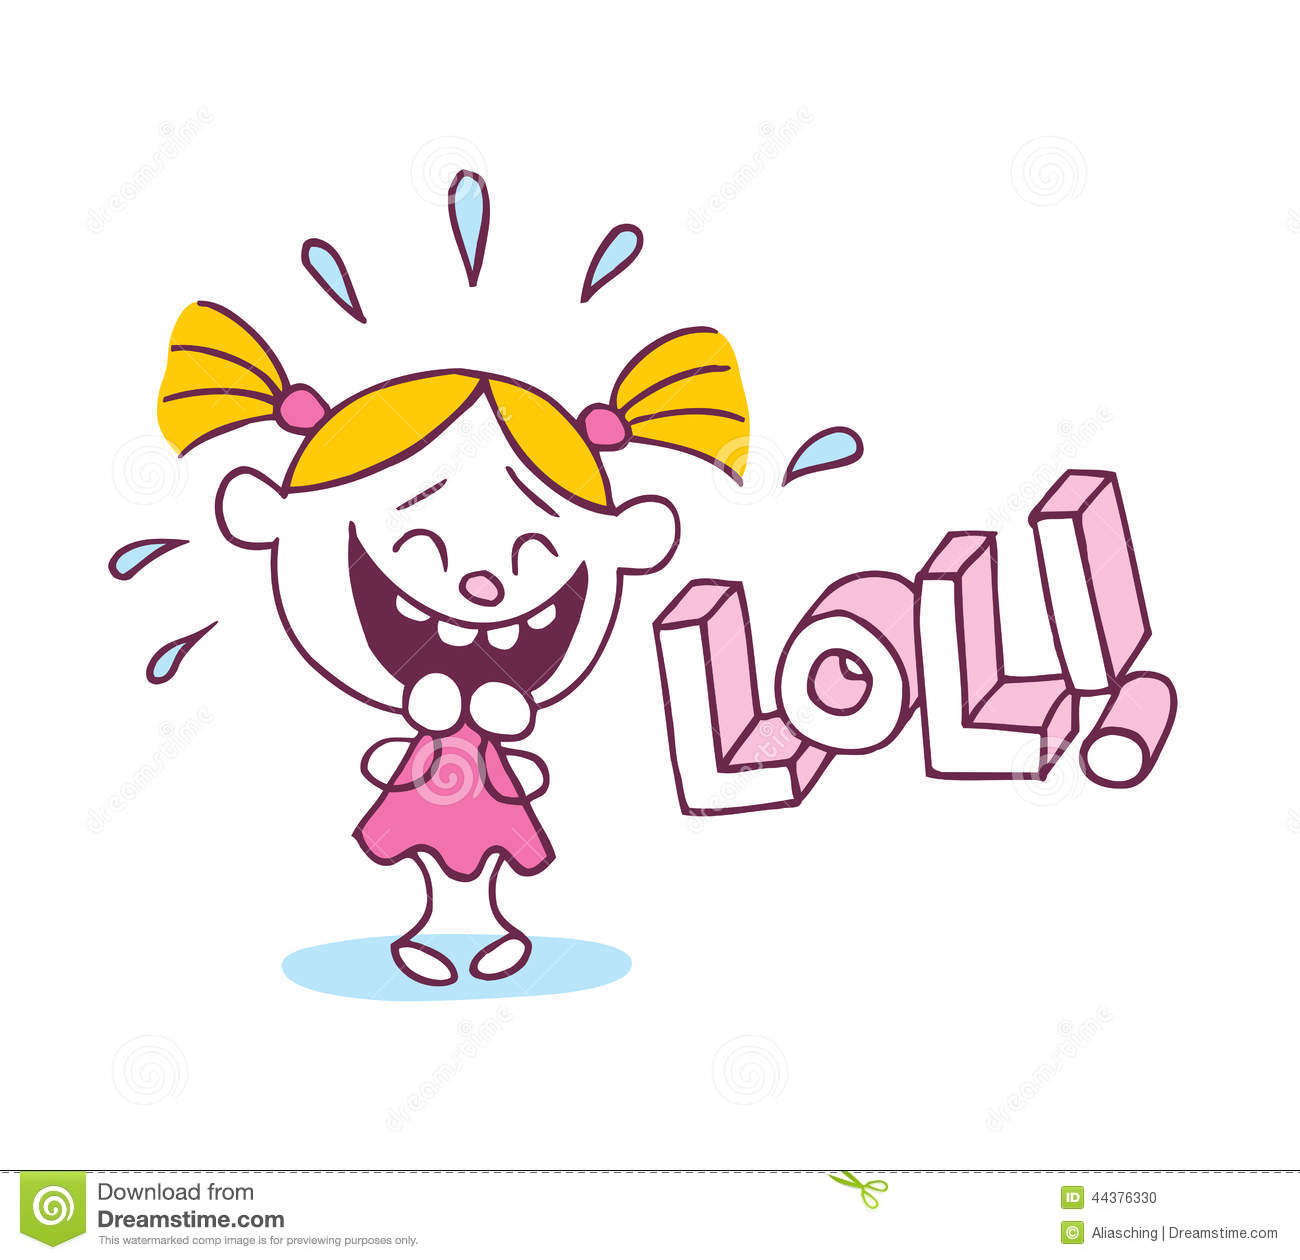 January page free download. Clipart png girl laughing